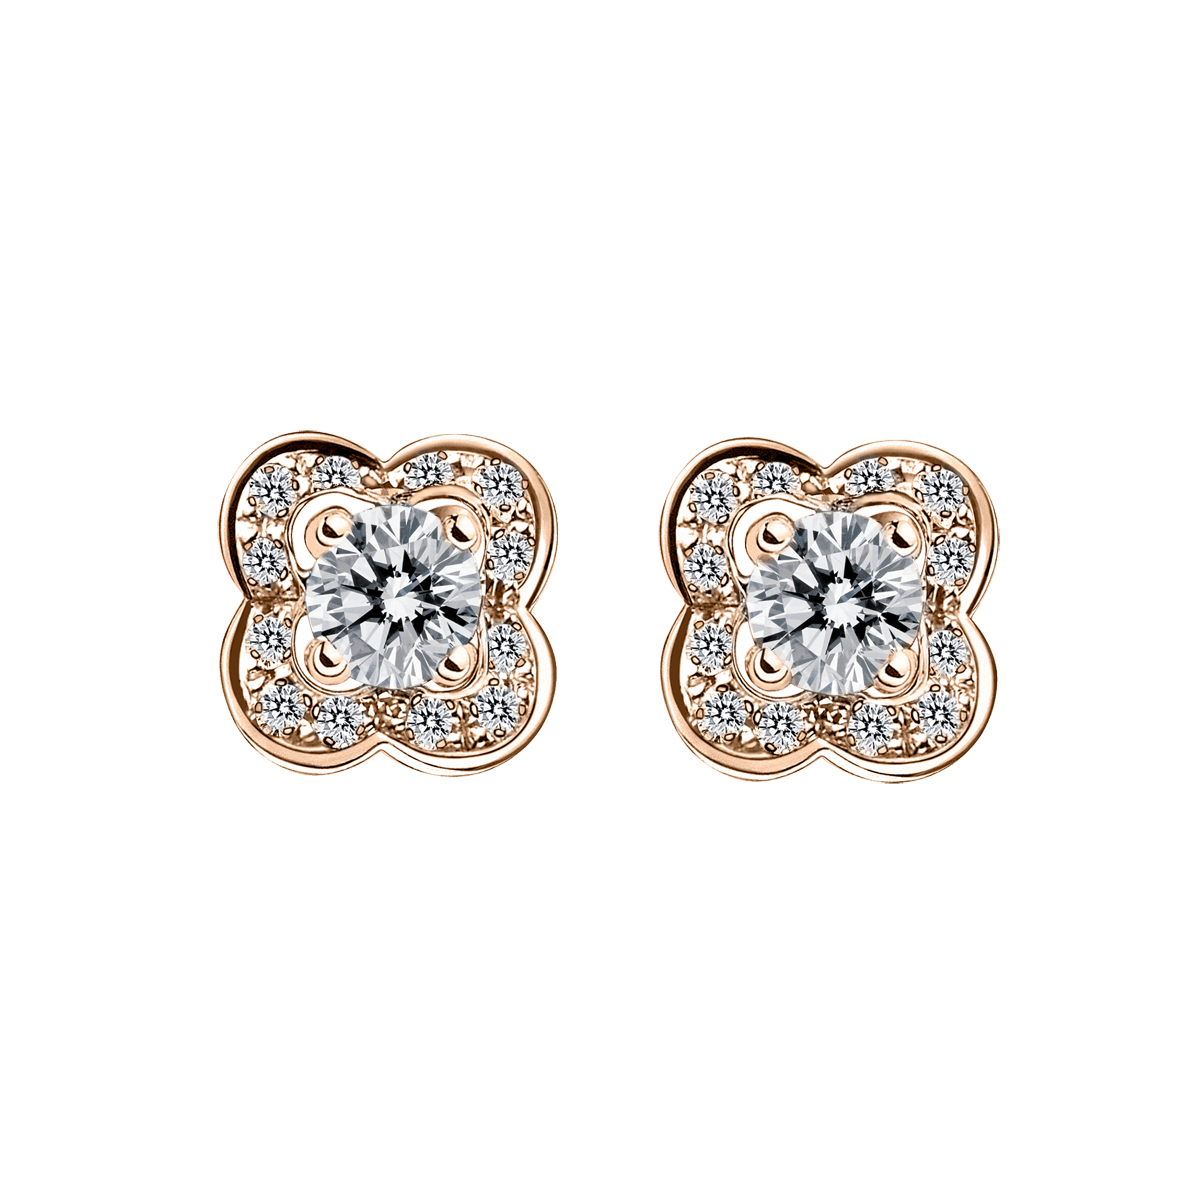 Chance of Love earrings, pink gold and diamonds